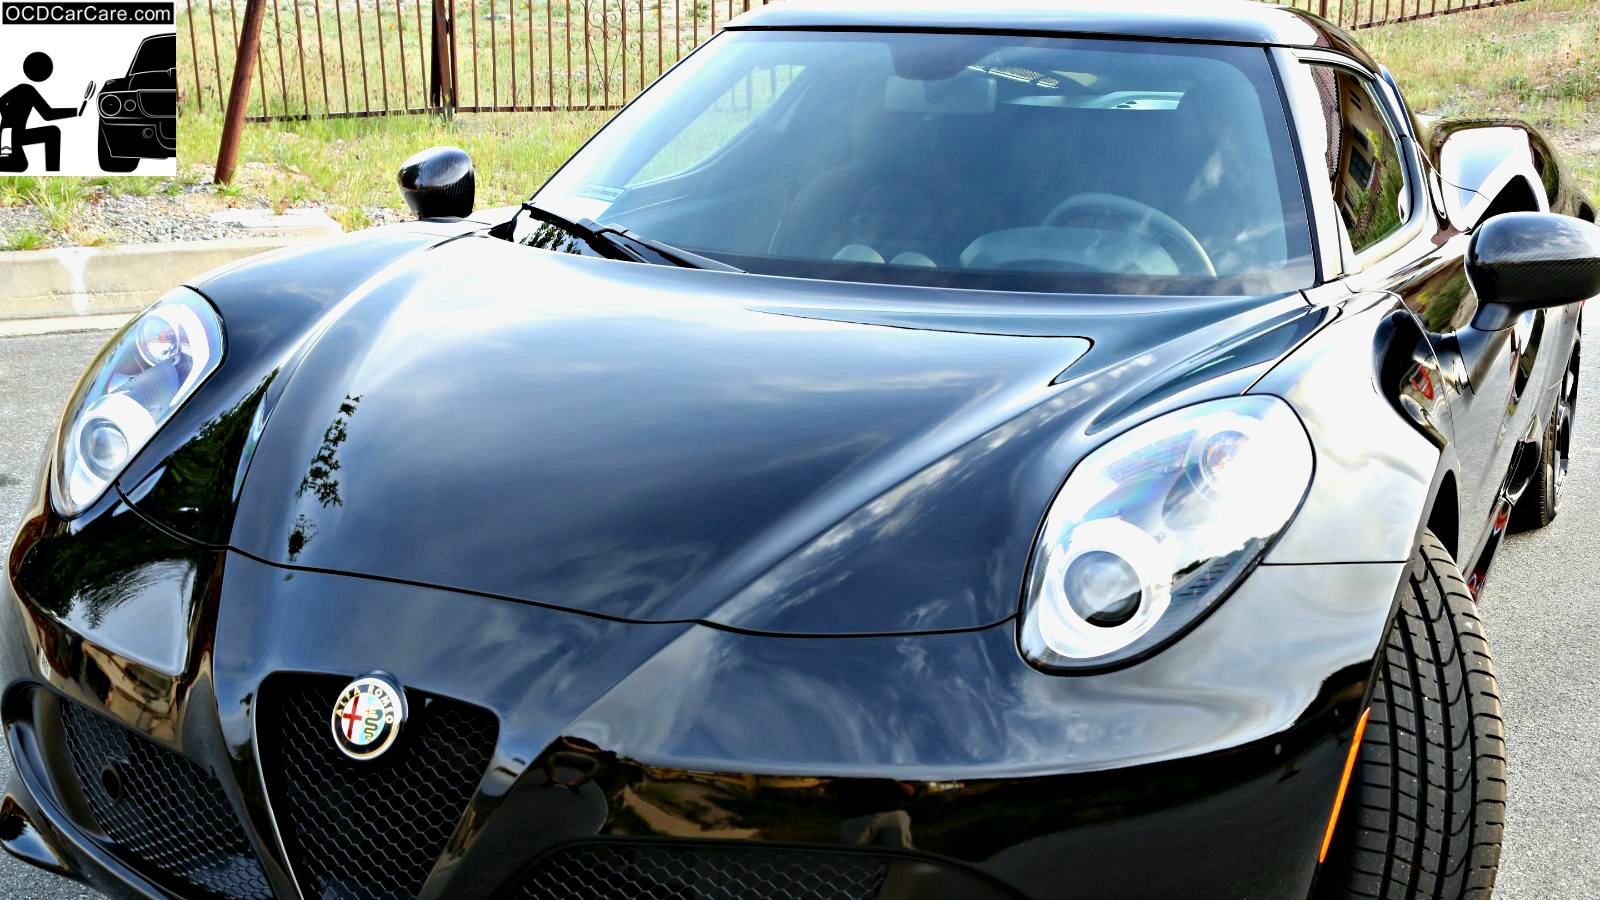 This Alfa Romeo 4C is the epitome of gloss & reflectivity with a ceramic nano coating.